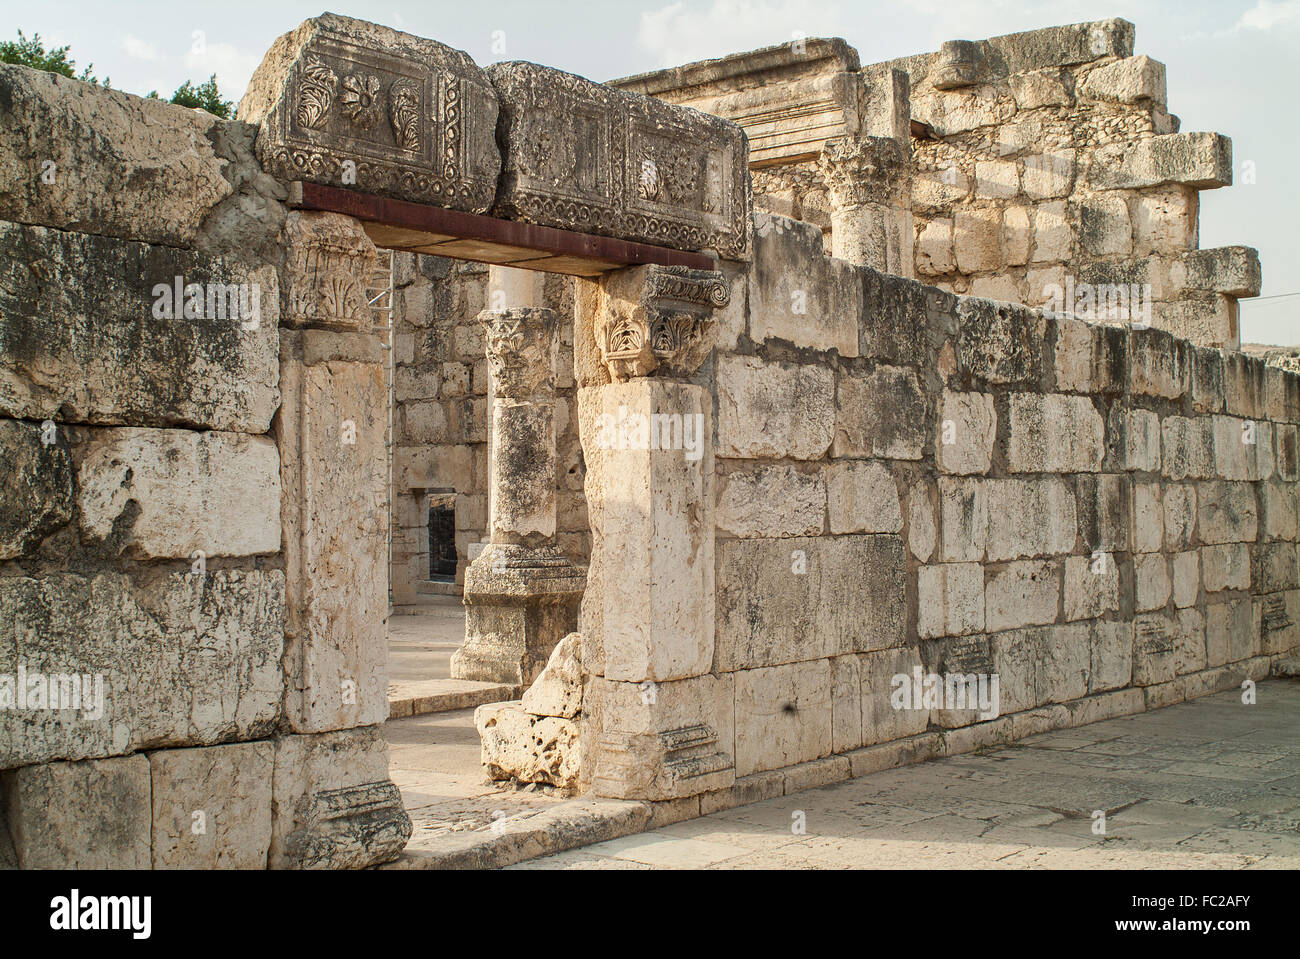 Synagogue ruins, Capernaum excavations, biblical village on, Sea of ​​Galilee, Israel - Stock Image